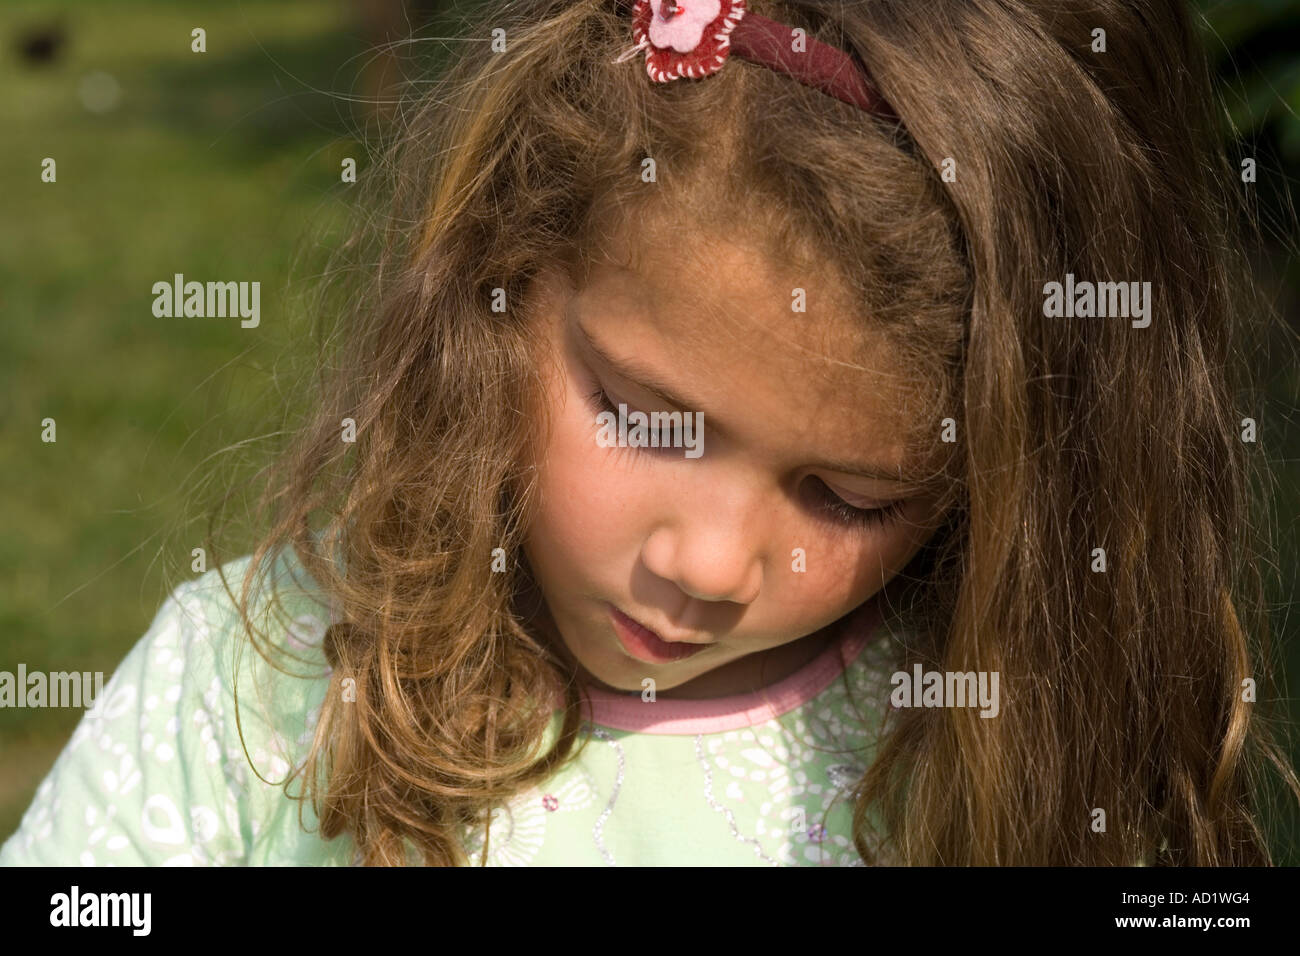 Petite fille gravement déprimés et embarassed Photo Stock